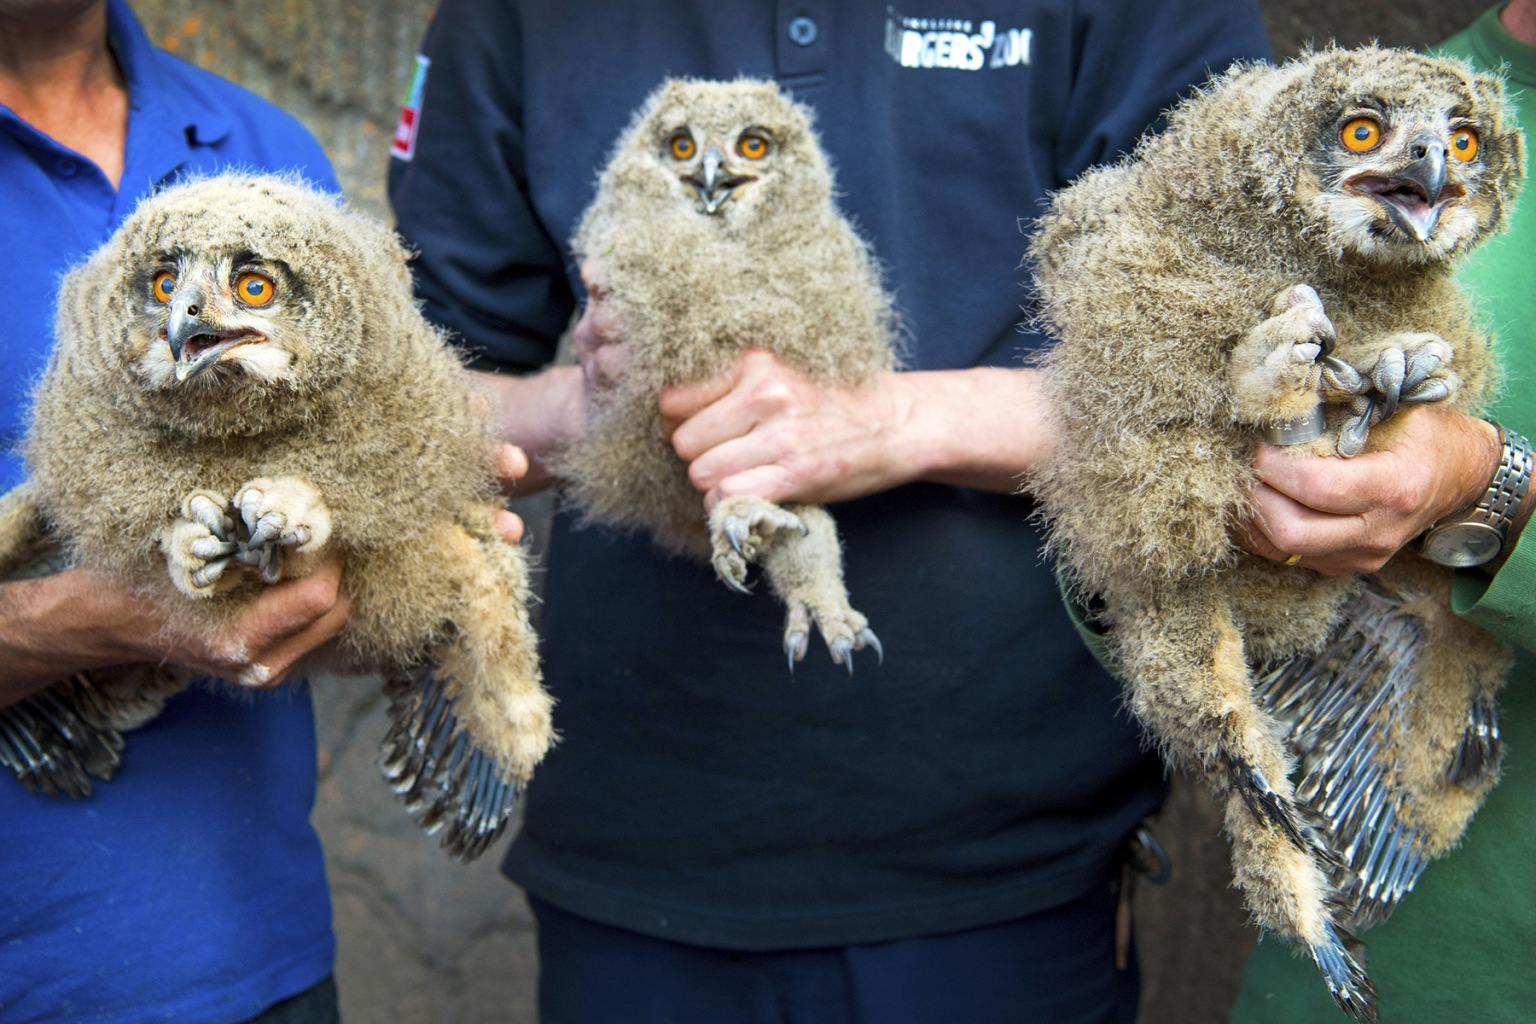 Three young wild owls are measured, weighed, and ringed at a zoo in Arnhem, the Netherlands, on May 23. The Eurasian eagle-owl is one of the world's largest owls, growing to have wing spans up to 6 feet. PIROSCHKA VAN DE WOUW/AFP/Getty Images